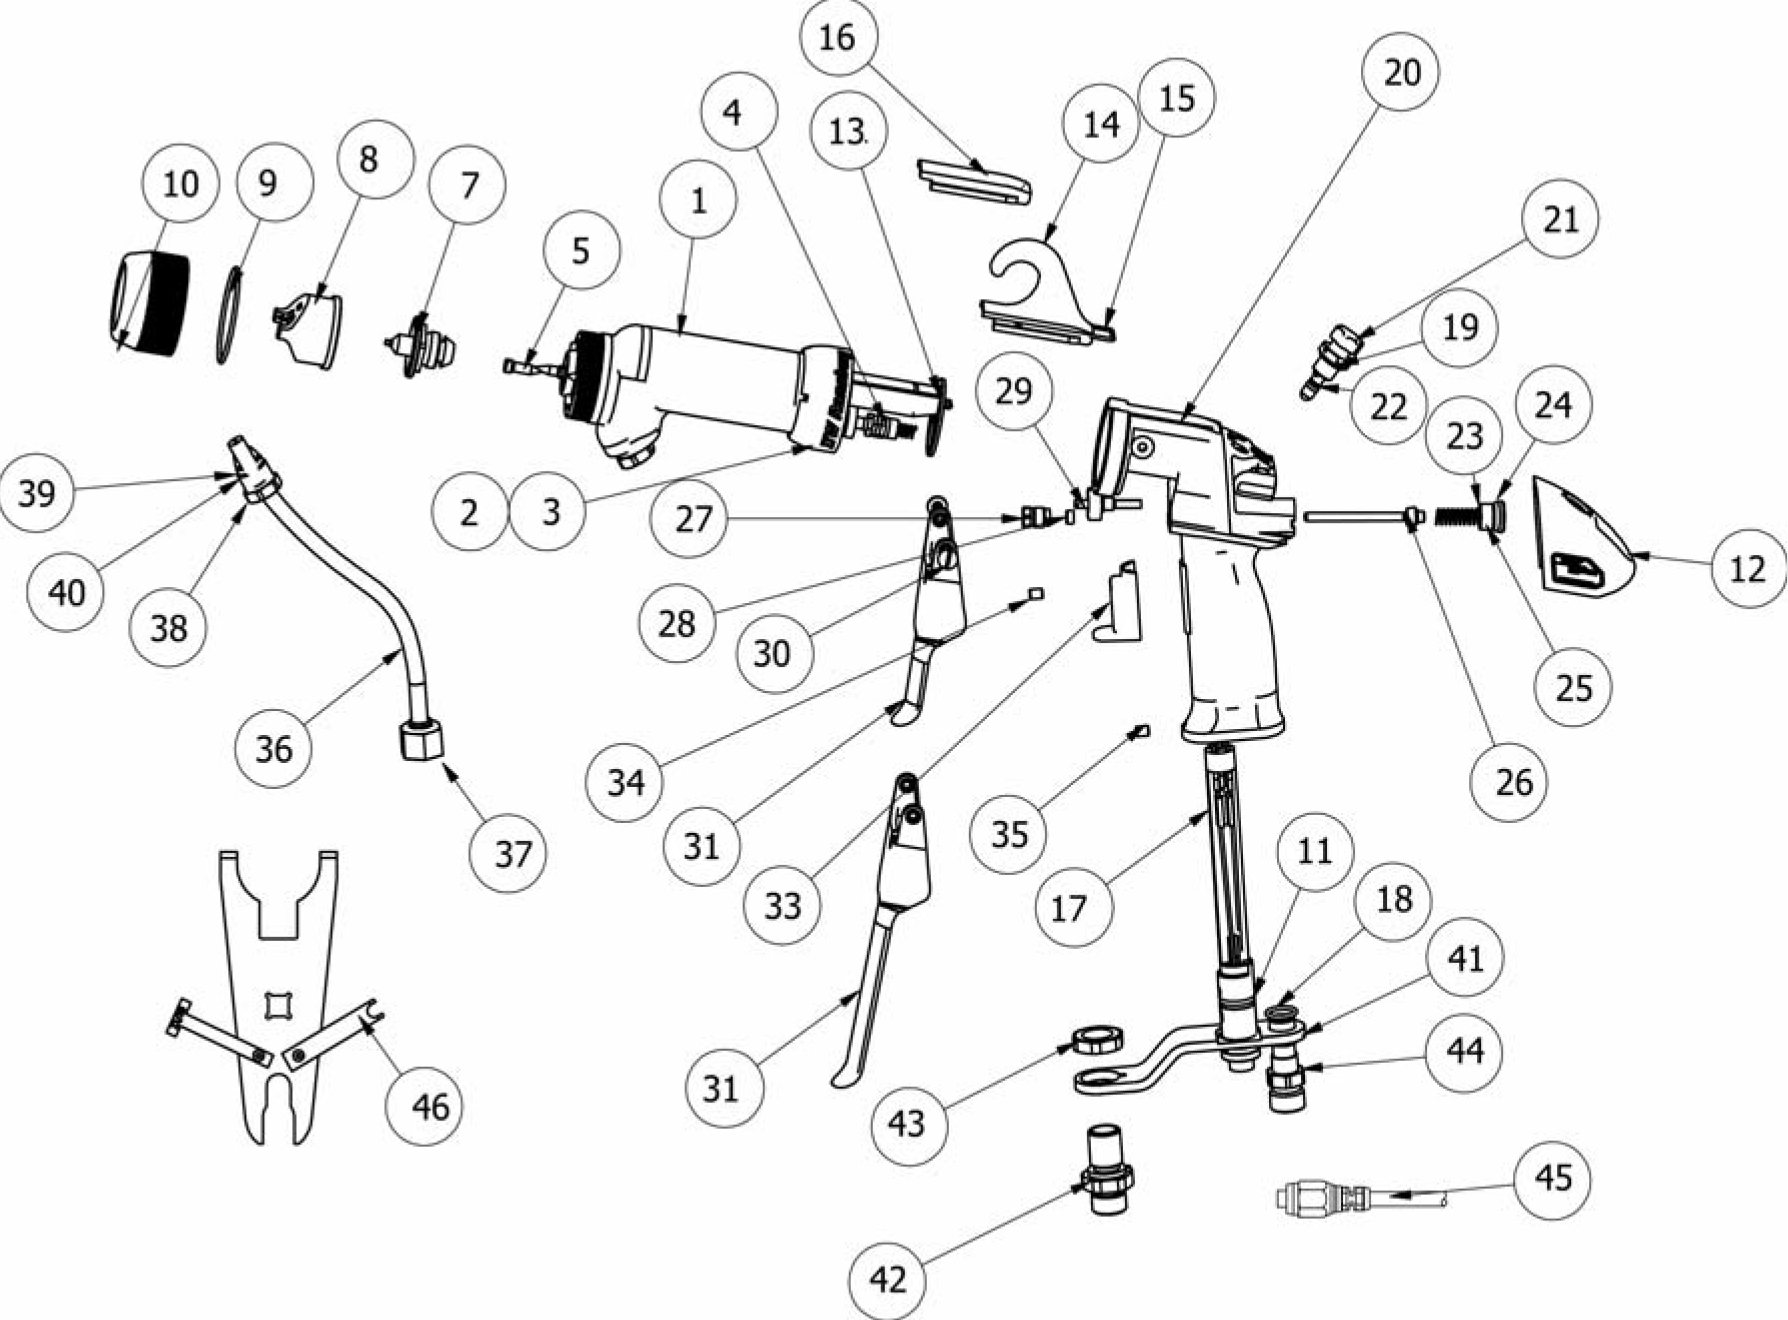 93 dodge pickup wiring dirg auto electrical wiring diagram 81 Dodge Ramcharger 91 dodge colt wiring diagram 91 toyota pickup wiring